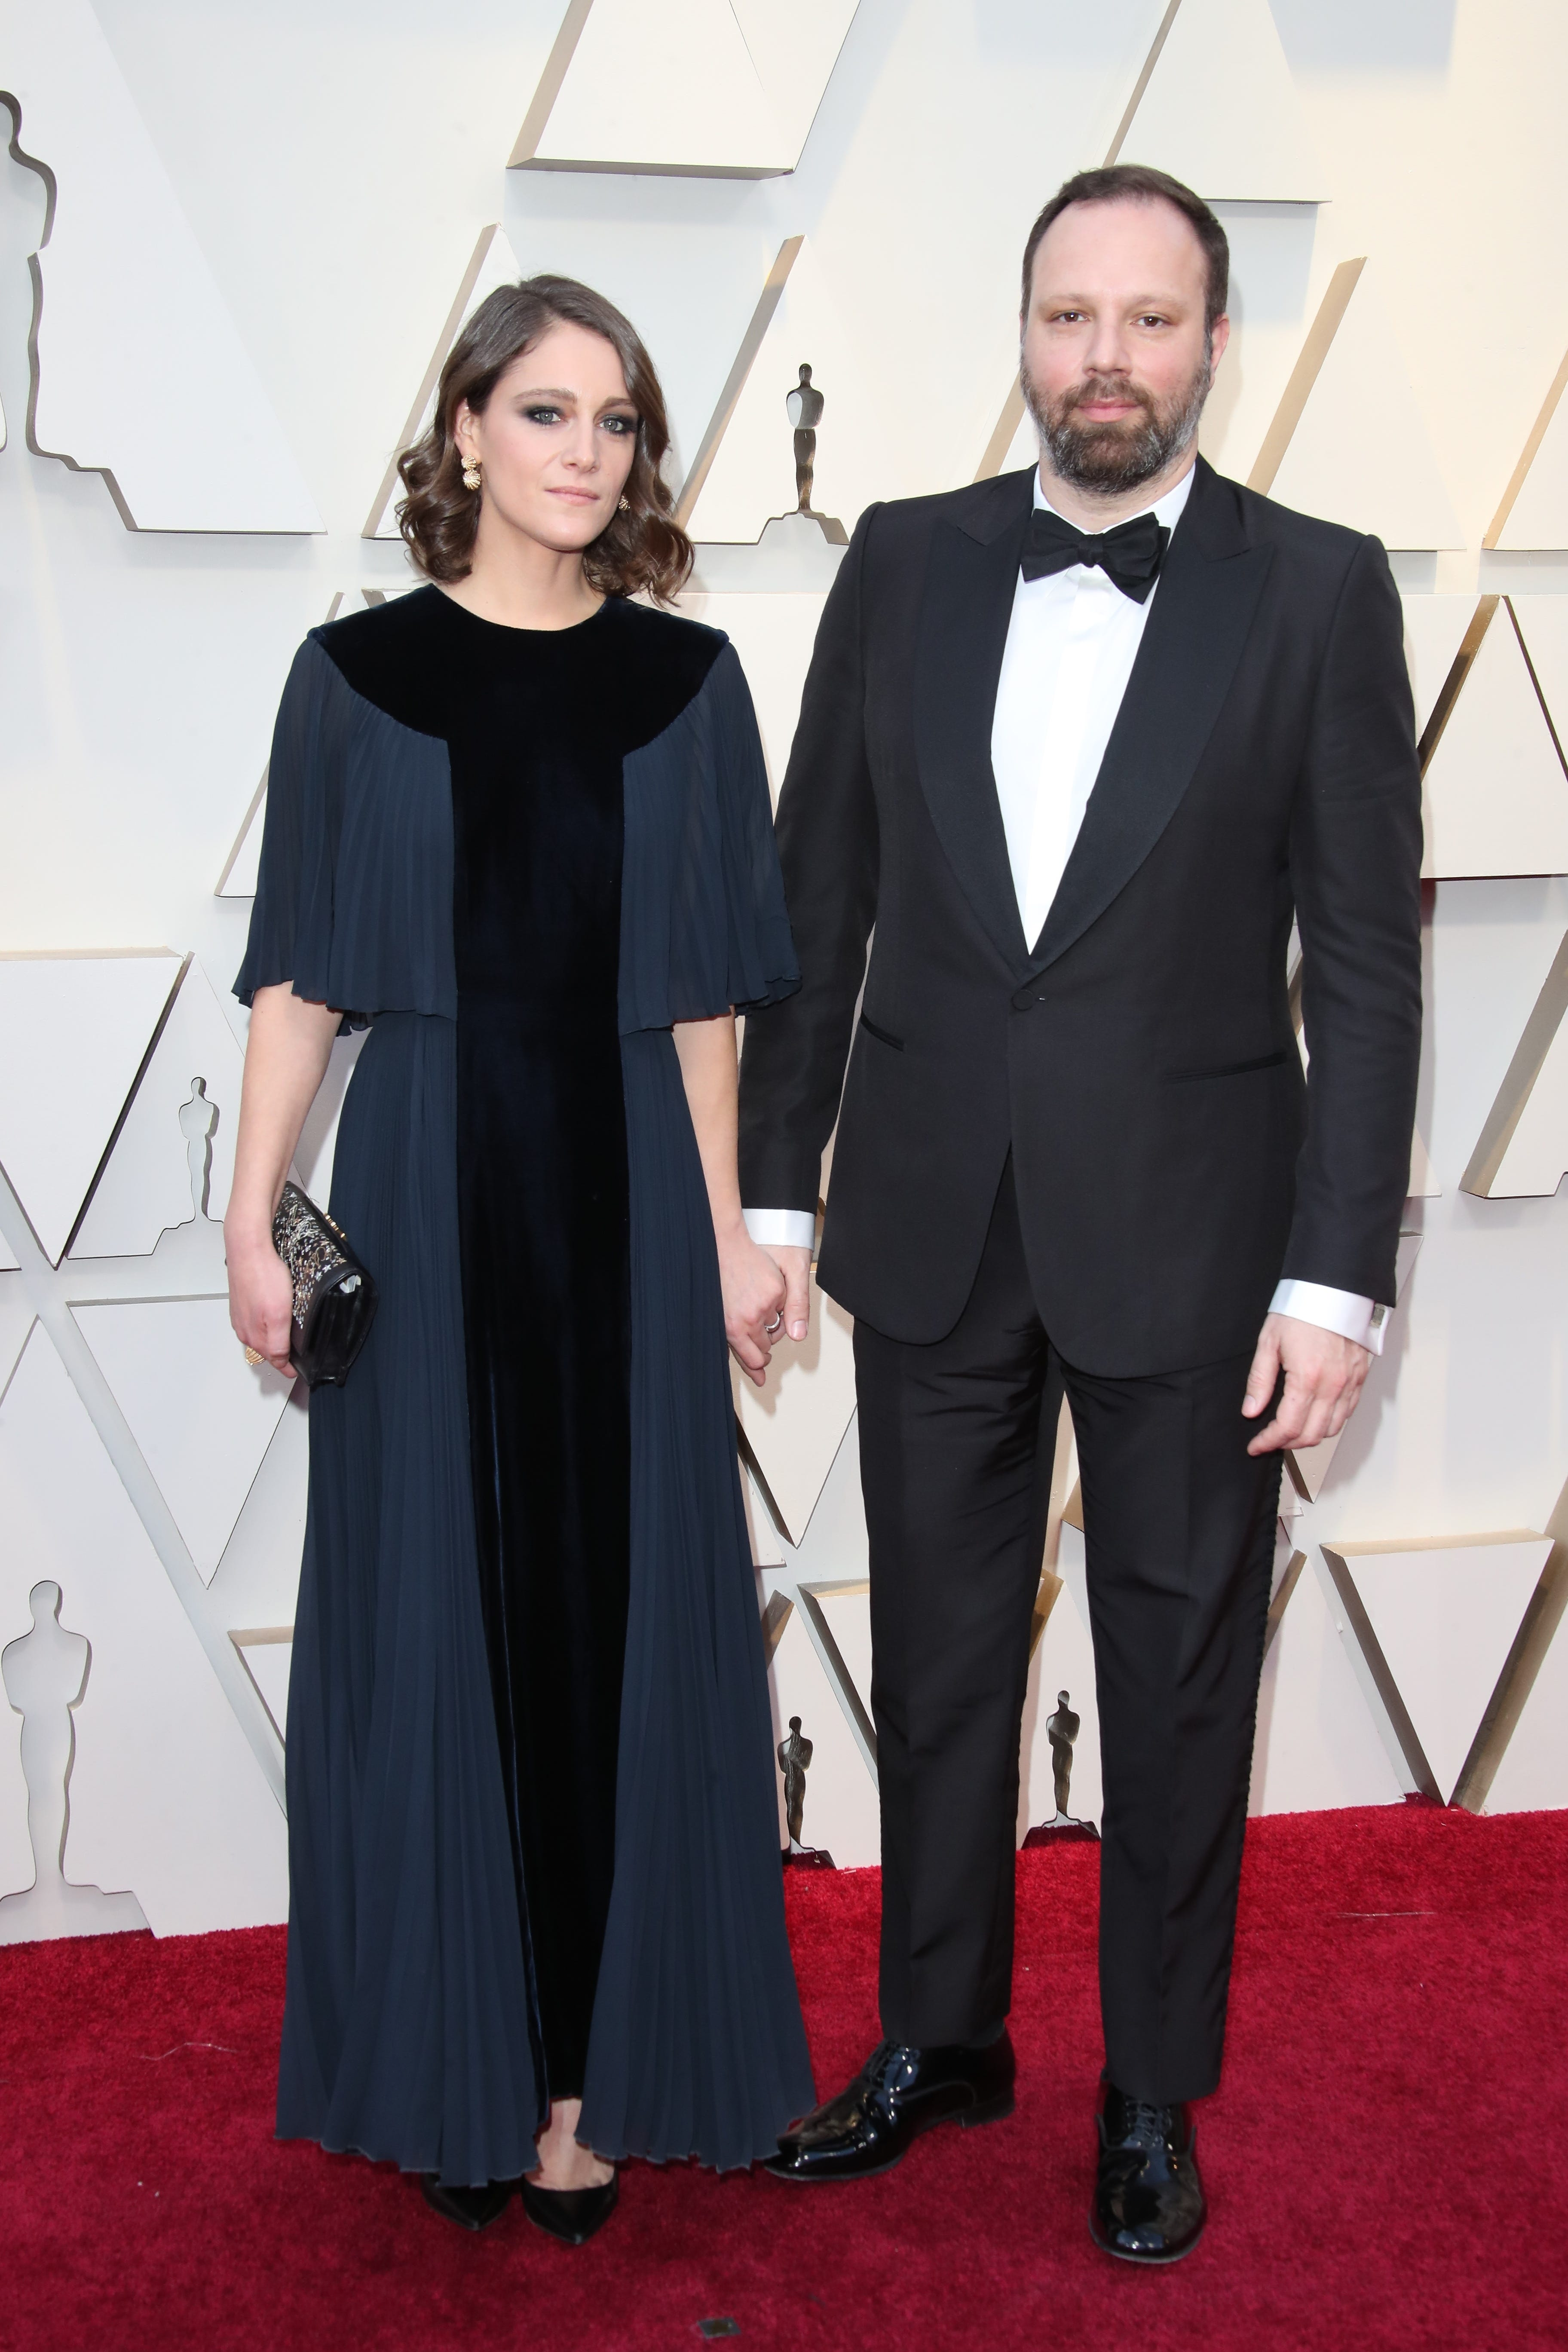 February 24, 2019; Los Angeles, CA, USA; Ariane Labed, left and Yorgos Lanthimos arrive at the 91st Academy Awards at the Dolby Theatre. Mandatory Credit: Dan MacMedan-USA TODAY NETWORK (Via OlyDrop)